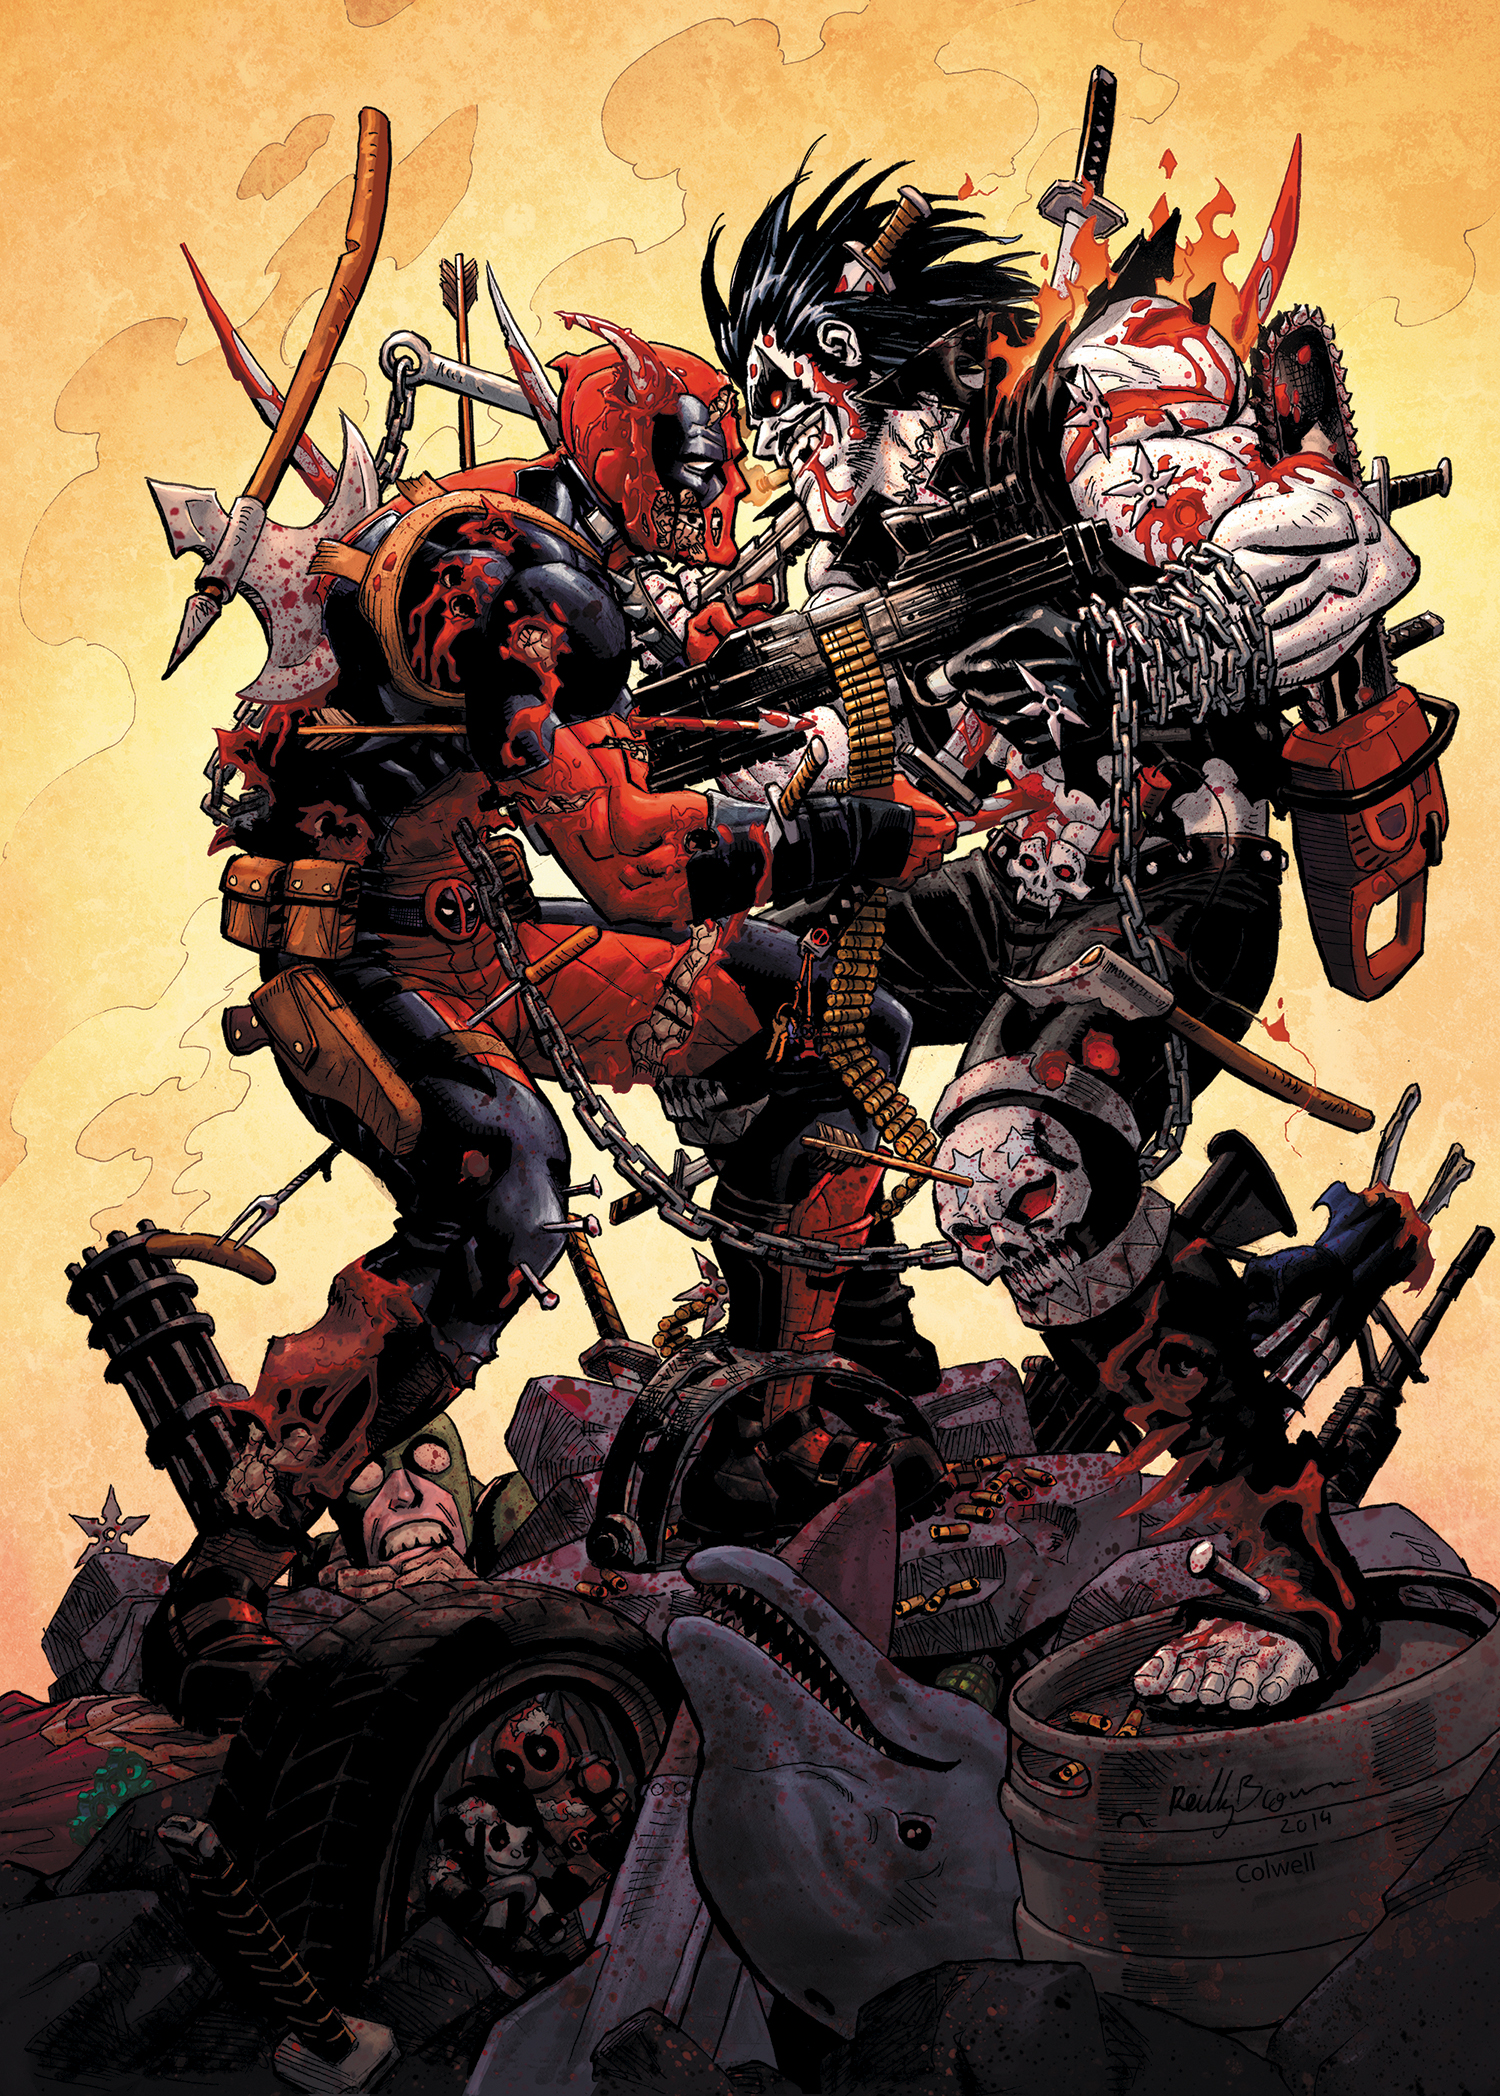 Reilly Deadpool vs Lobo